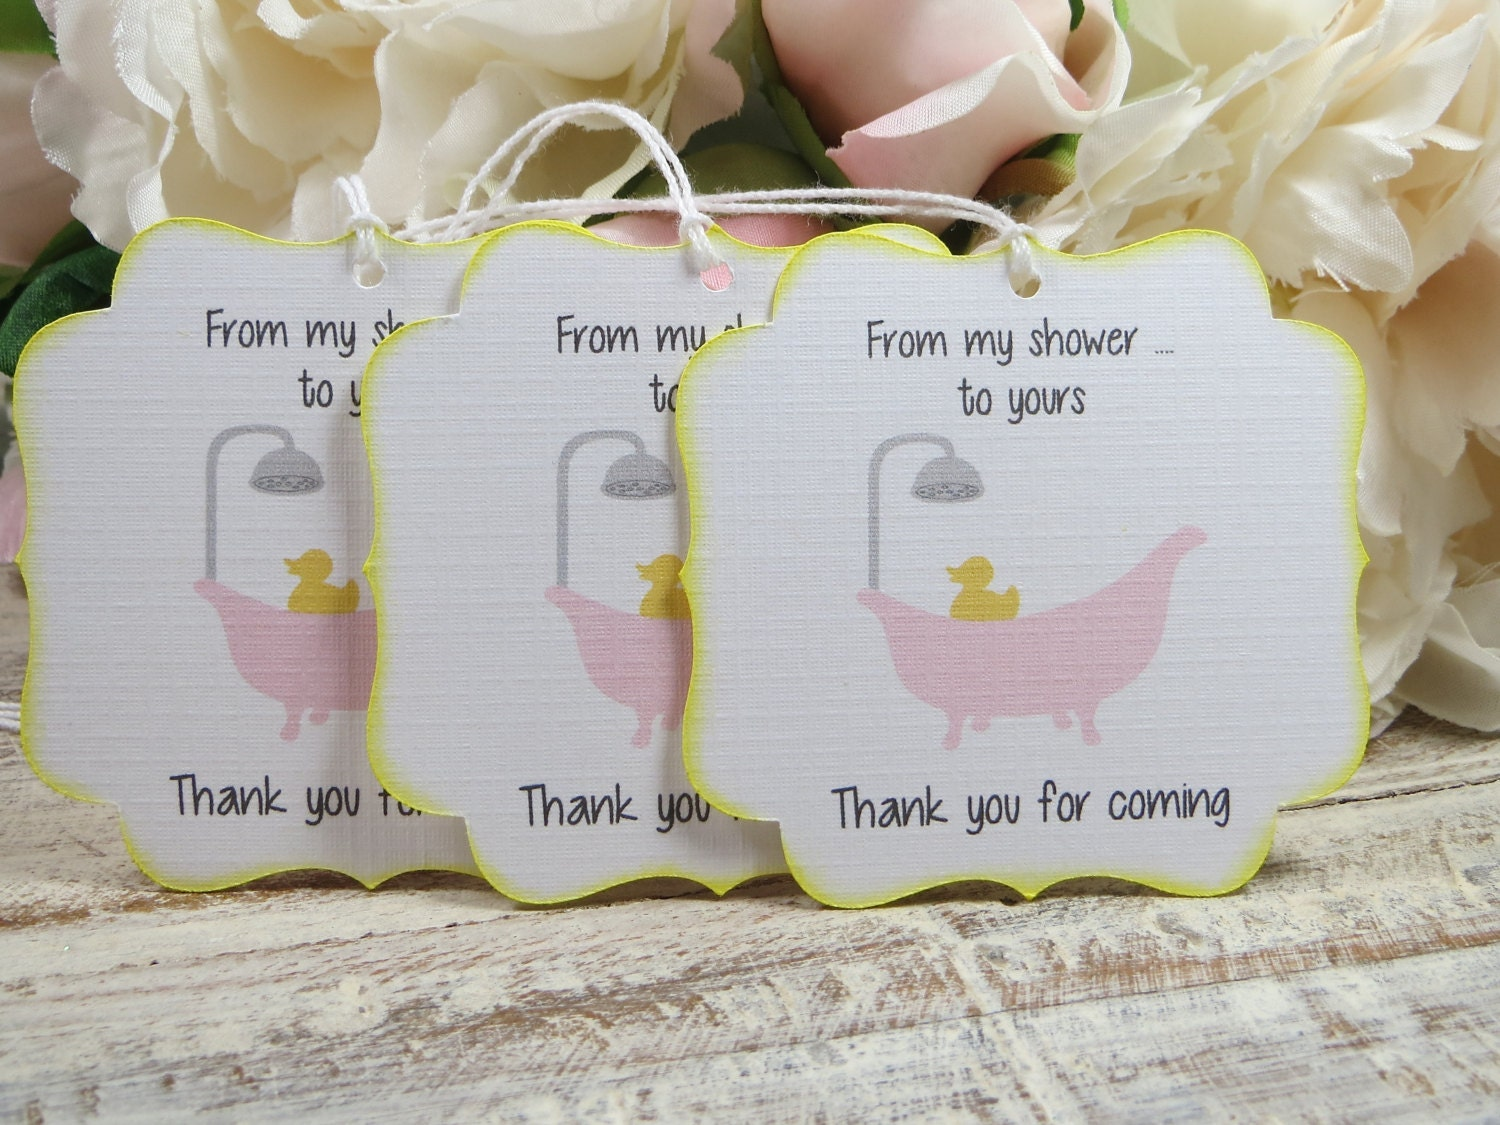 Bubble bath baby shower favor tags, Rubber duck baby shower thank ...